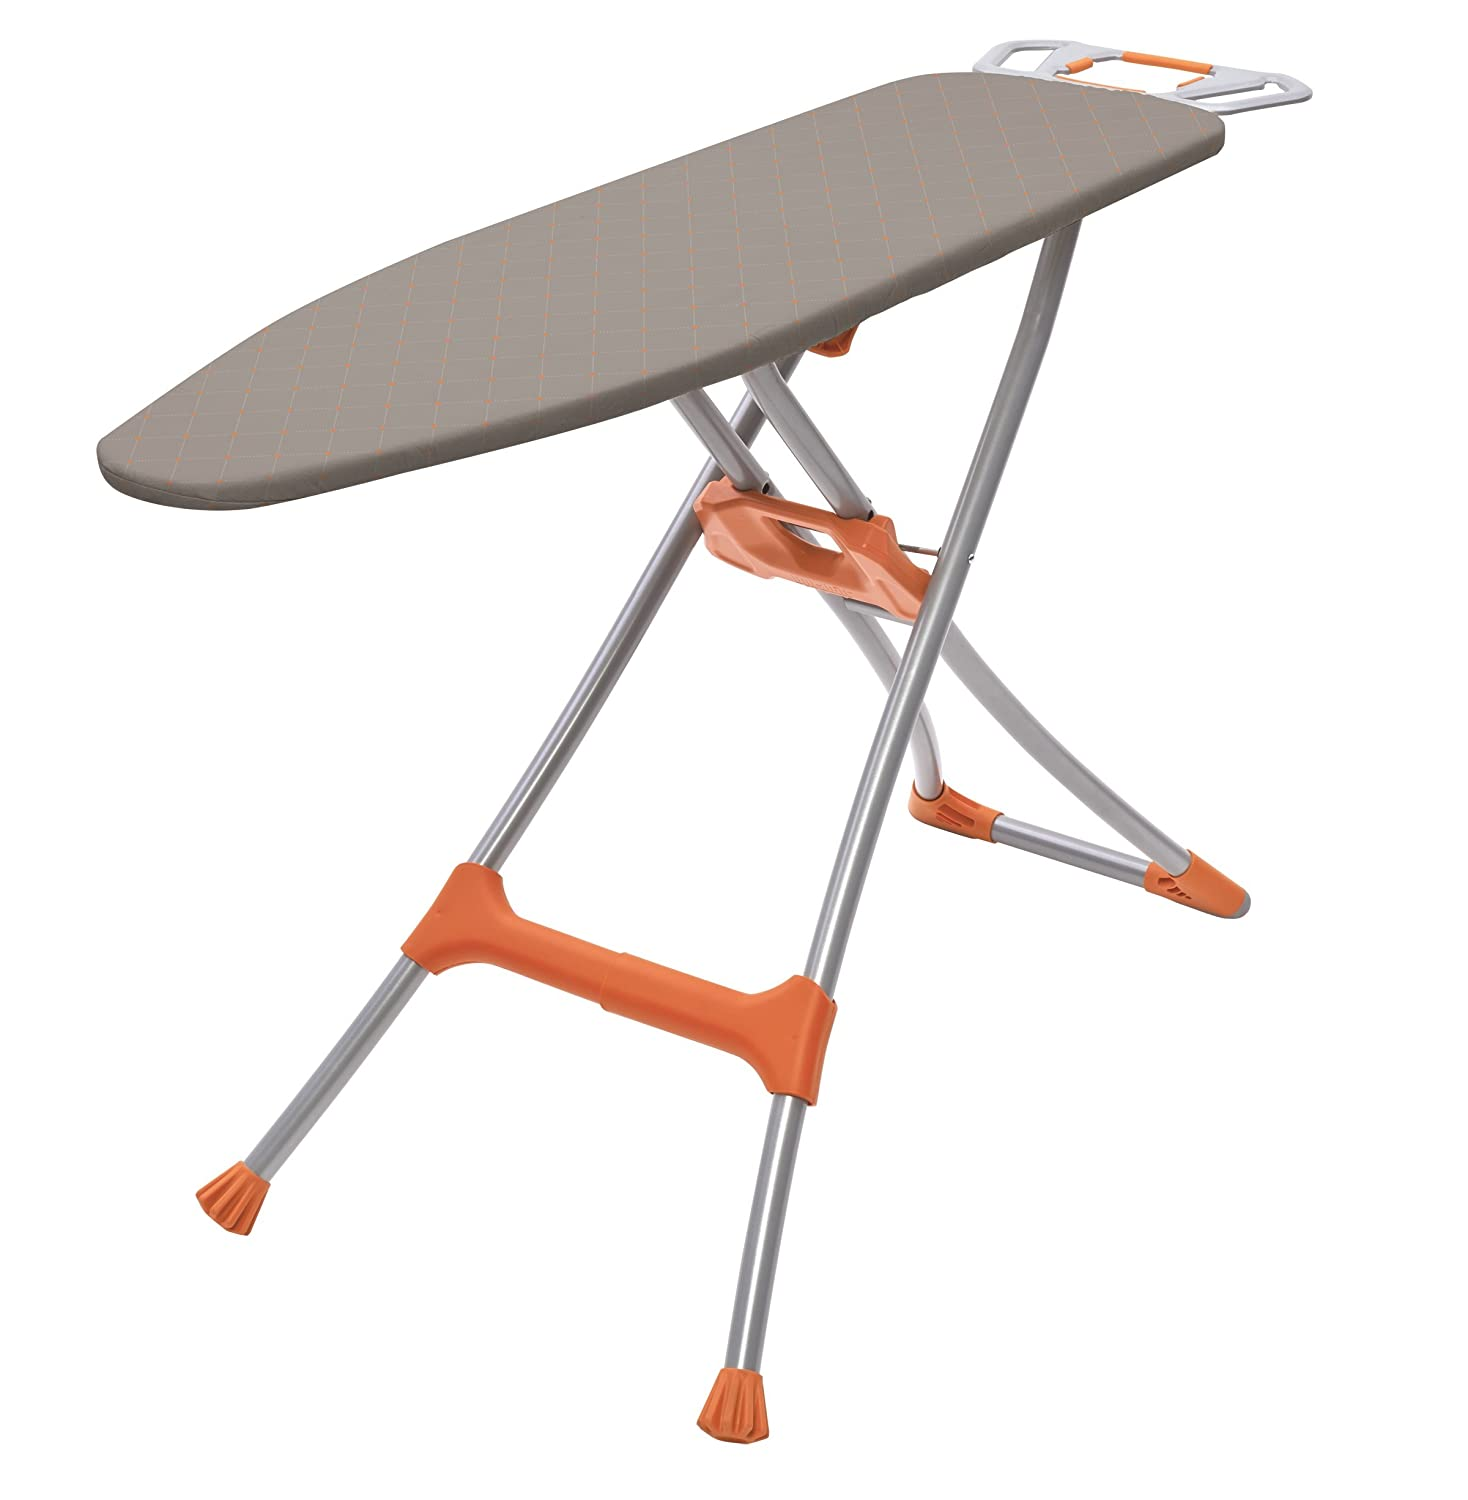 Homz Durabilt DX1500 Premium Steel Top Ironing Board with Wide Leg Stability, Adjustable up to 39.5 Adjustable up to 39.5 4750150